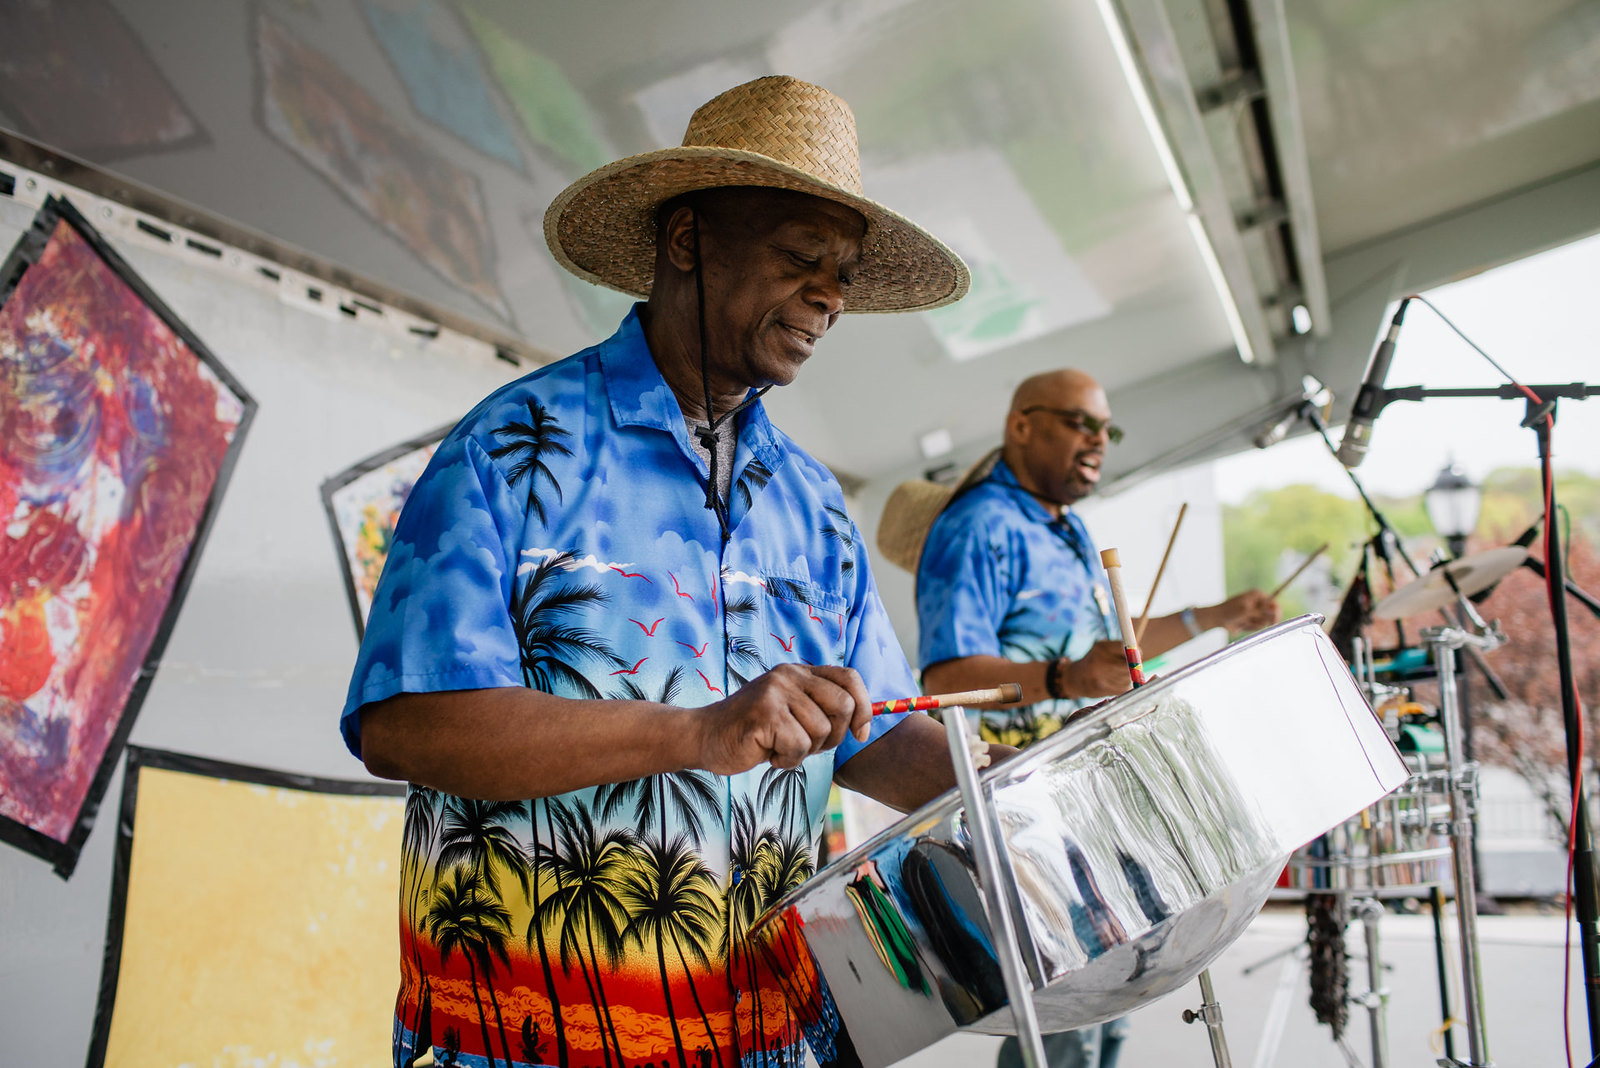 FHFS 2018 Caribbean Vibe Steel Drum Band